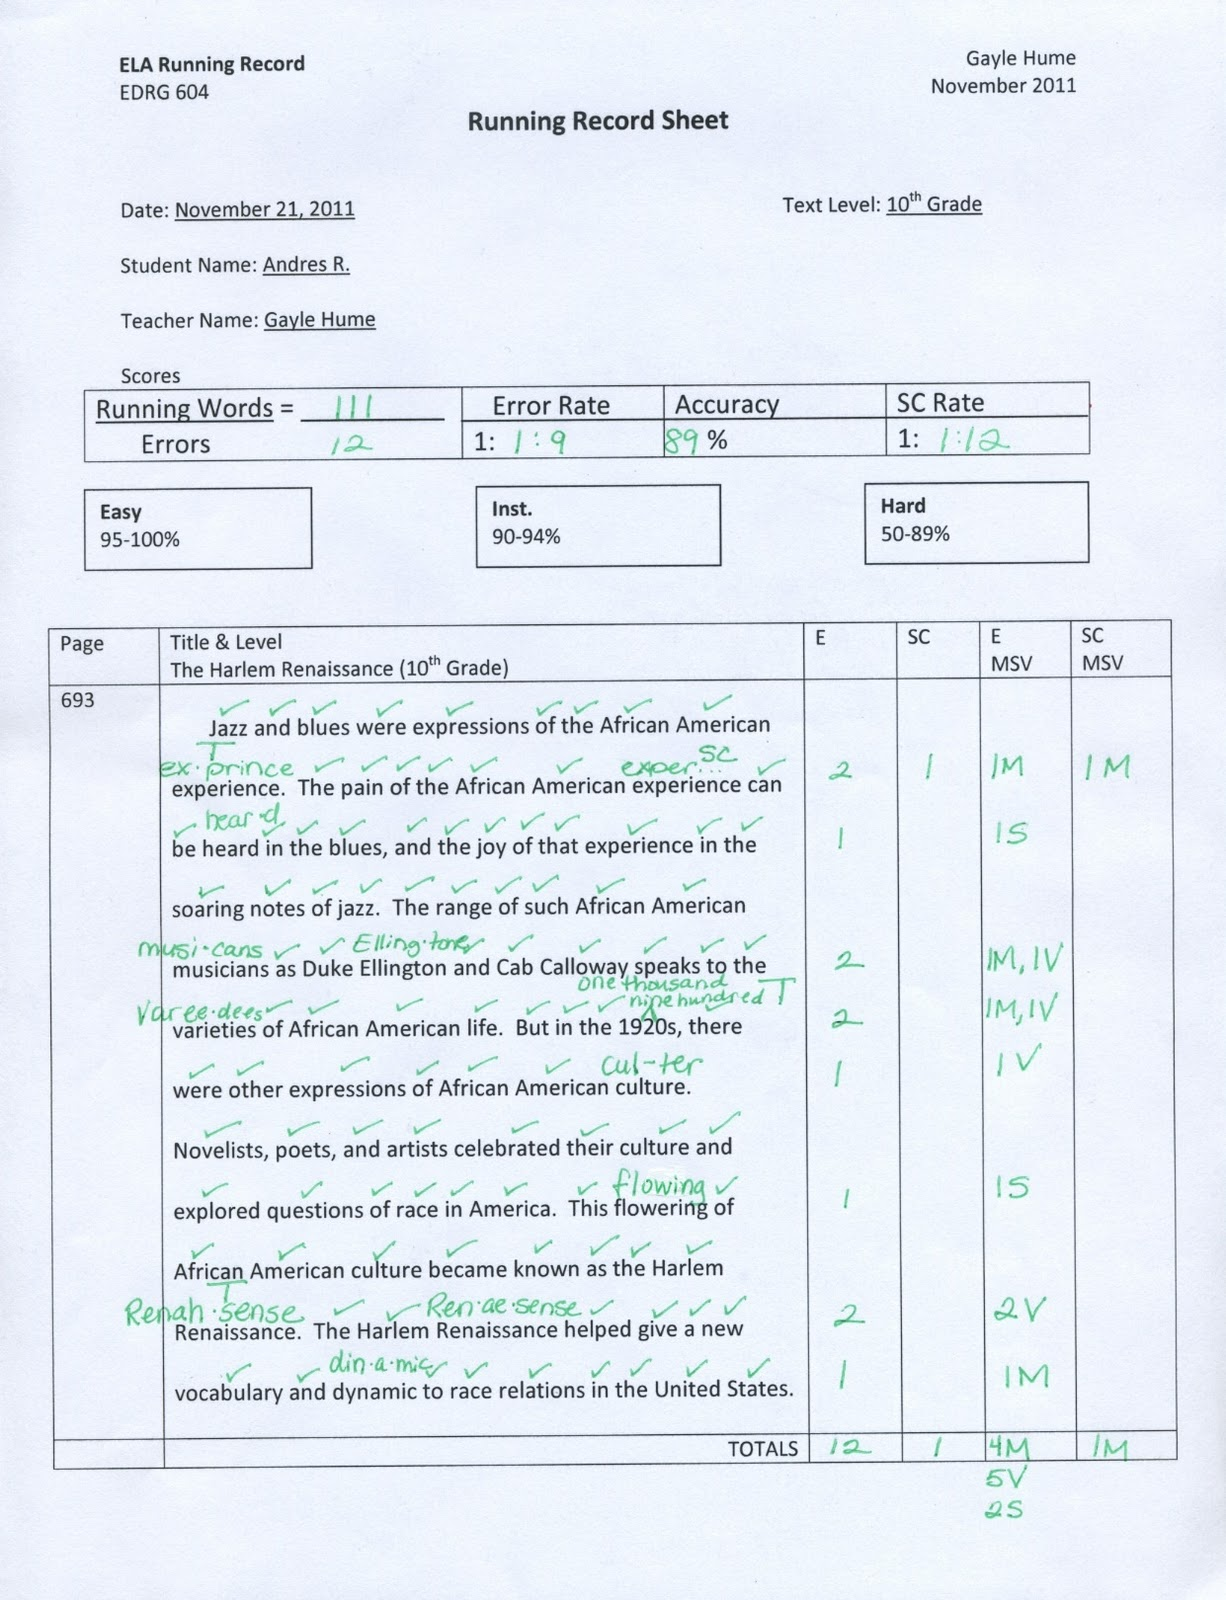 english correction symbols essays 91 121 113 106 english correction symbols essays